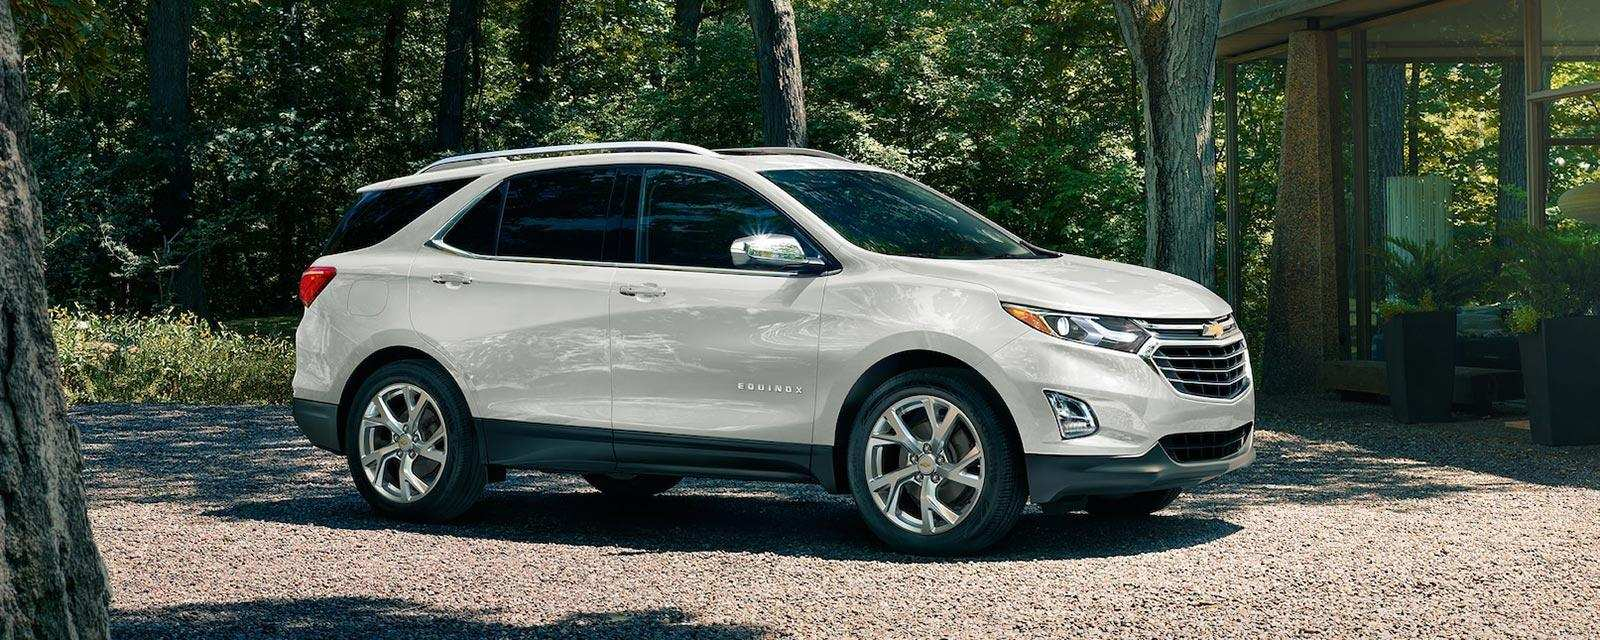 51 Best Review 2019 Chevrolet Equinox Engine for 2019 Chevrolet Equinox